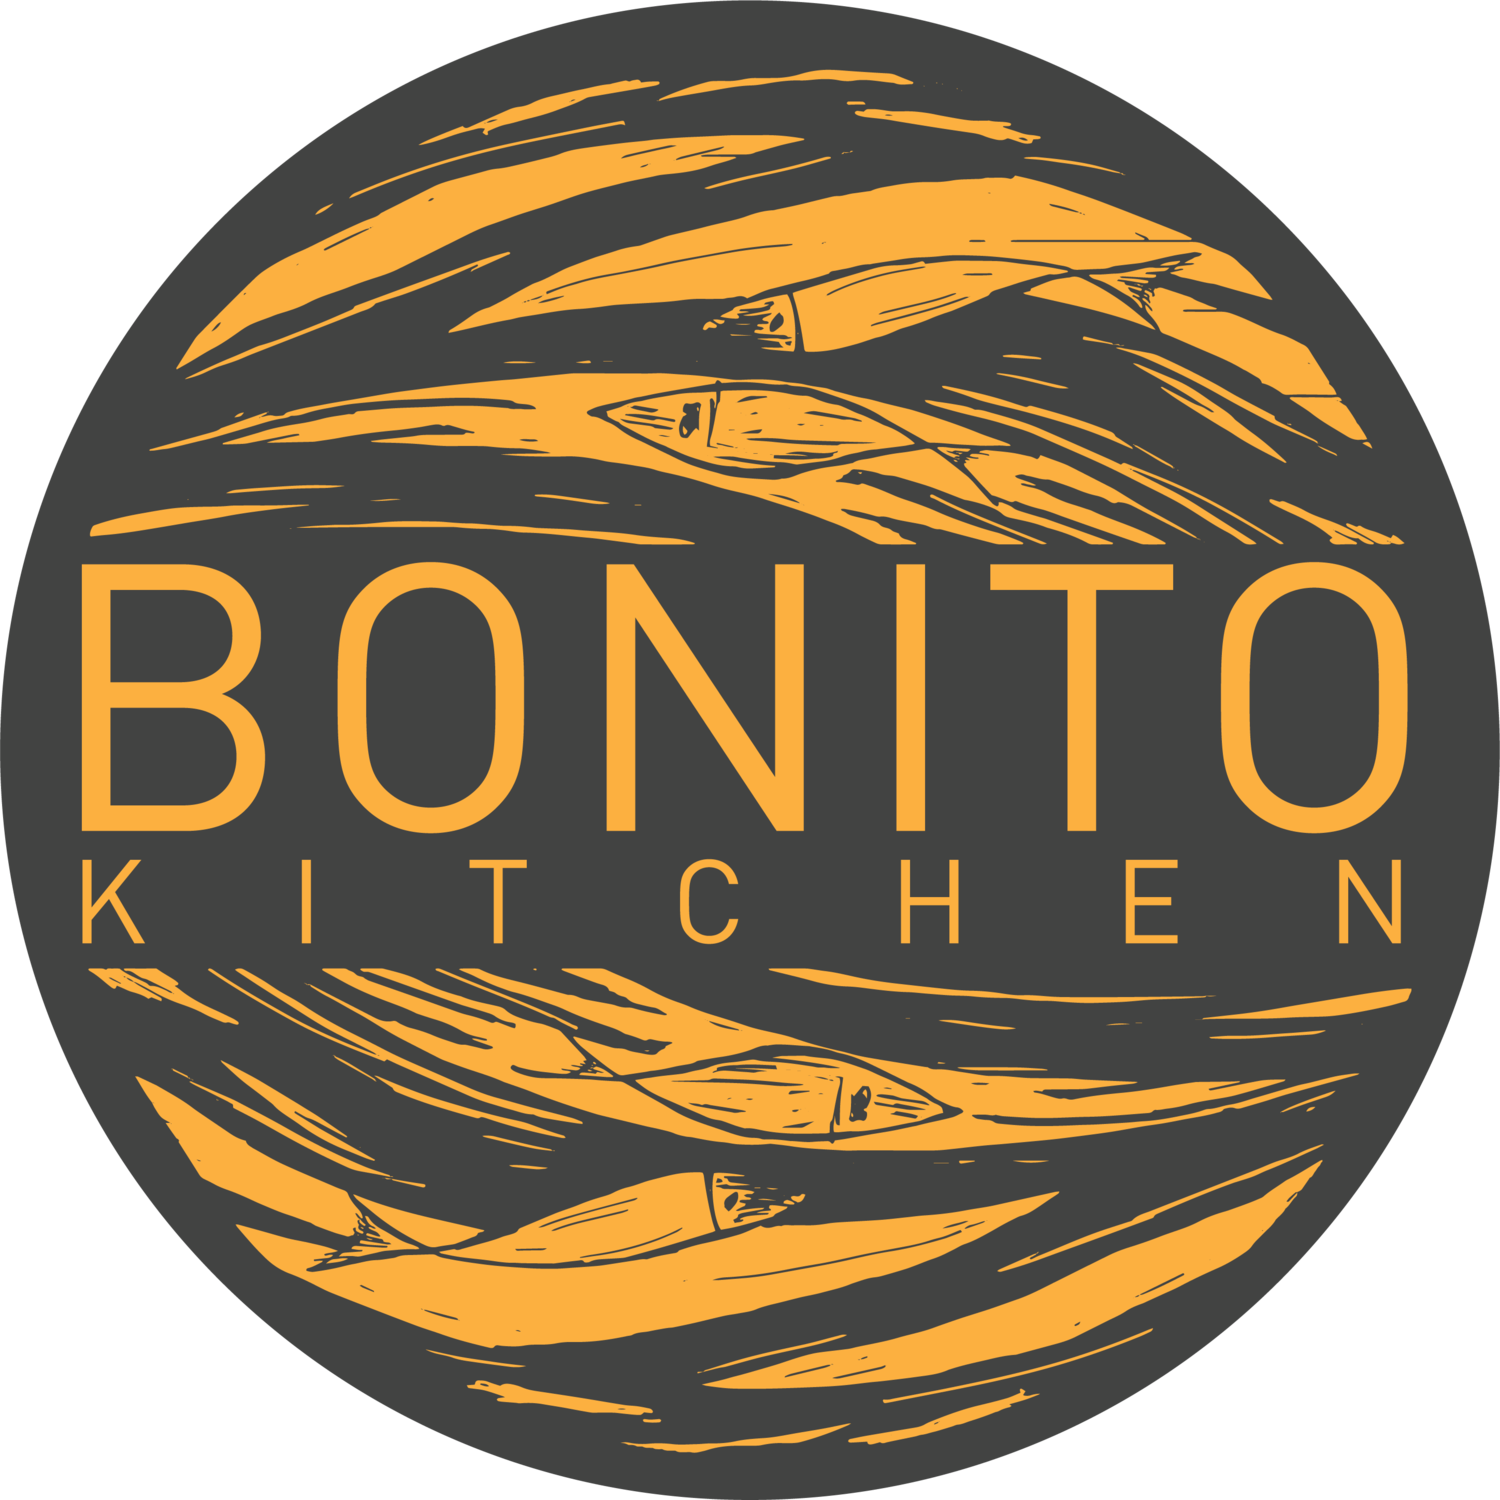 Bonito Kitchen Restaurant & Bar